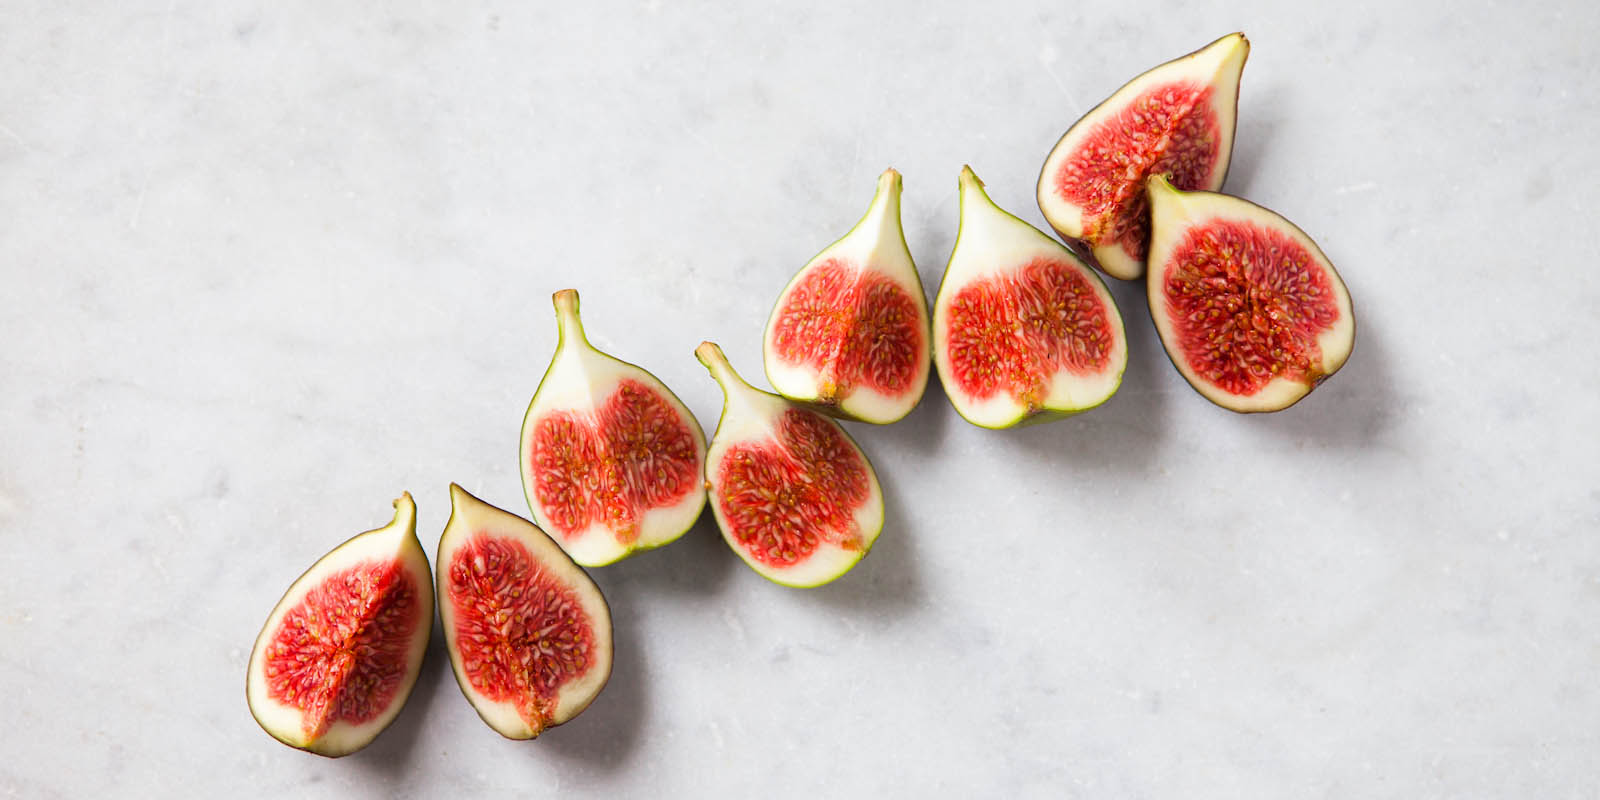 Chopped fresh figs on marble worktop